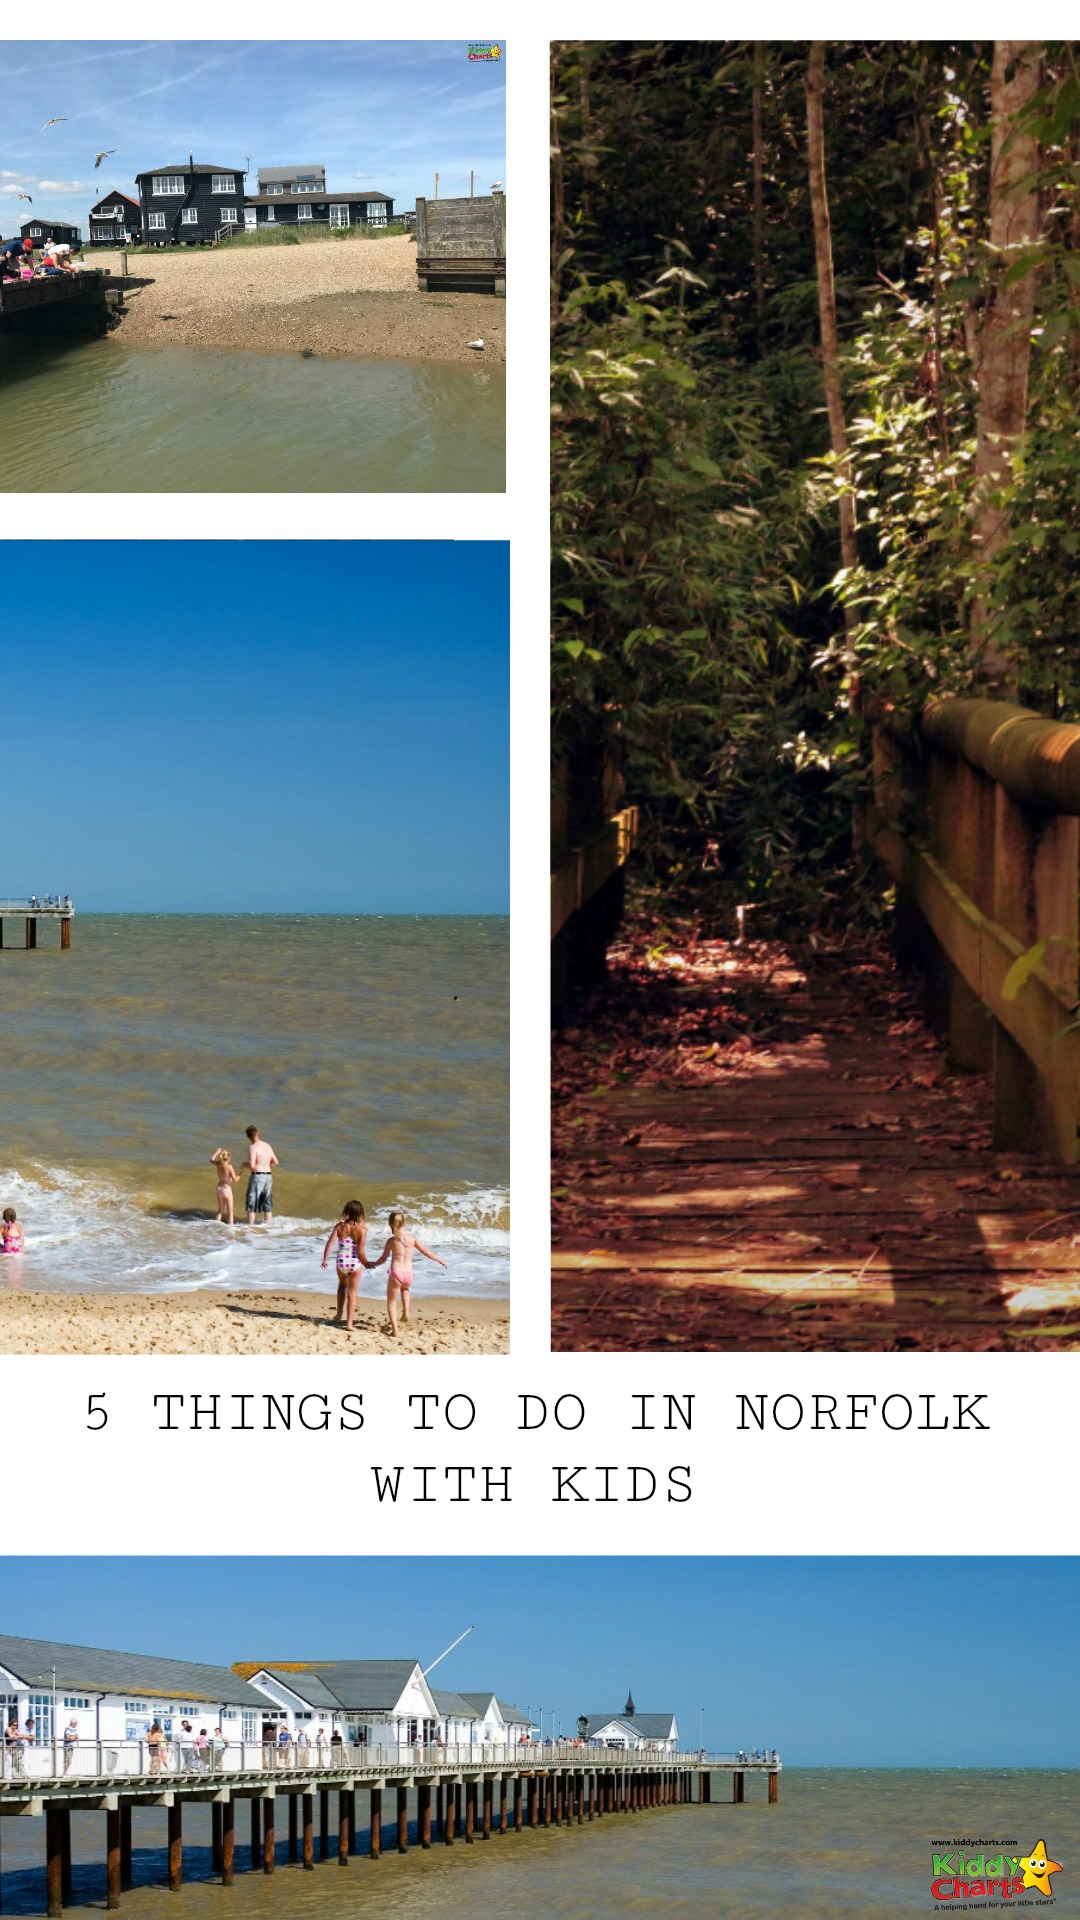 Looking for ideas for Norfolk with Kids - we've got some, so come visit! #norfolk #uk #travel #familytravel